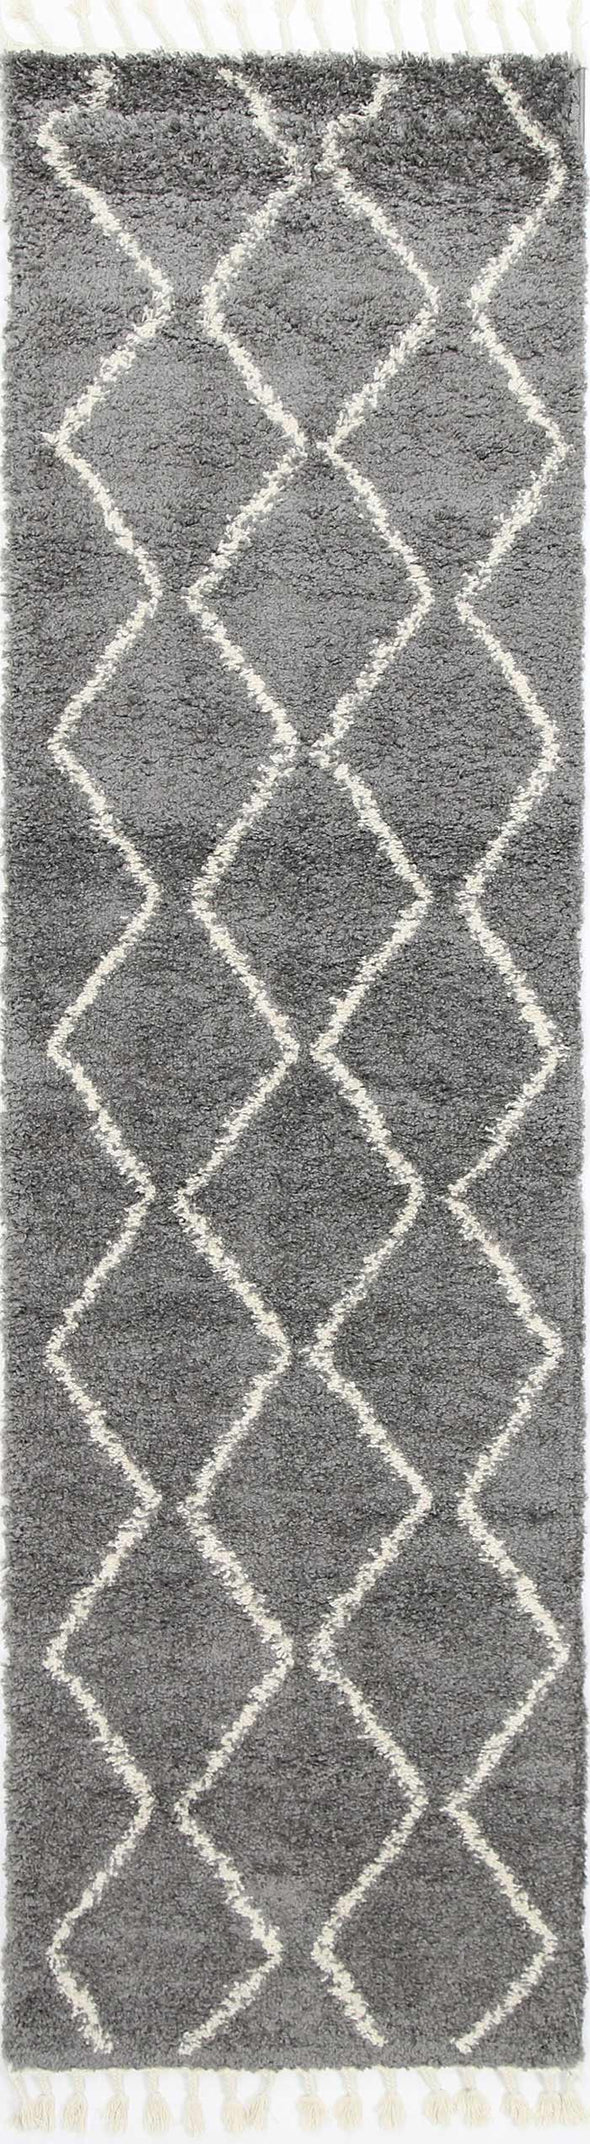 Kasbah Levi Tribal Grey Runner  Rug